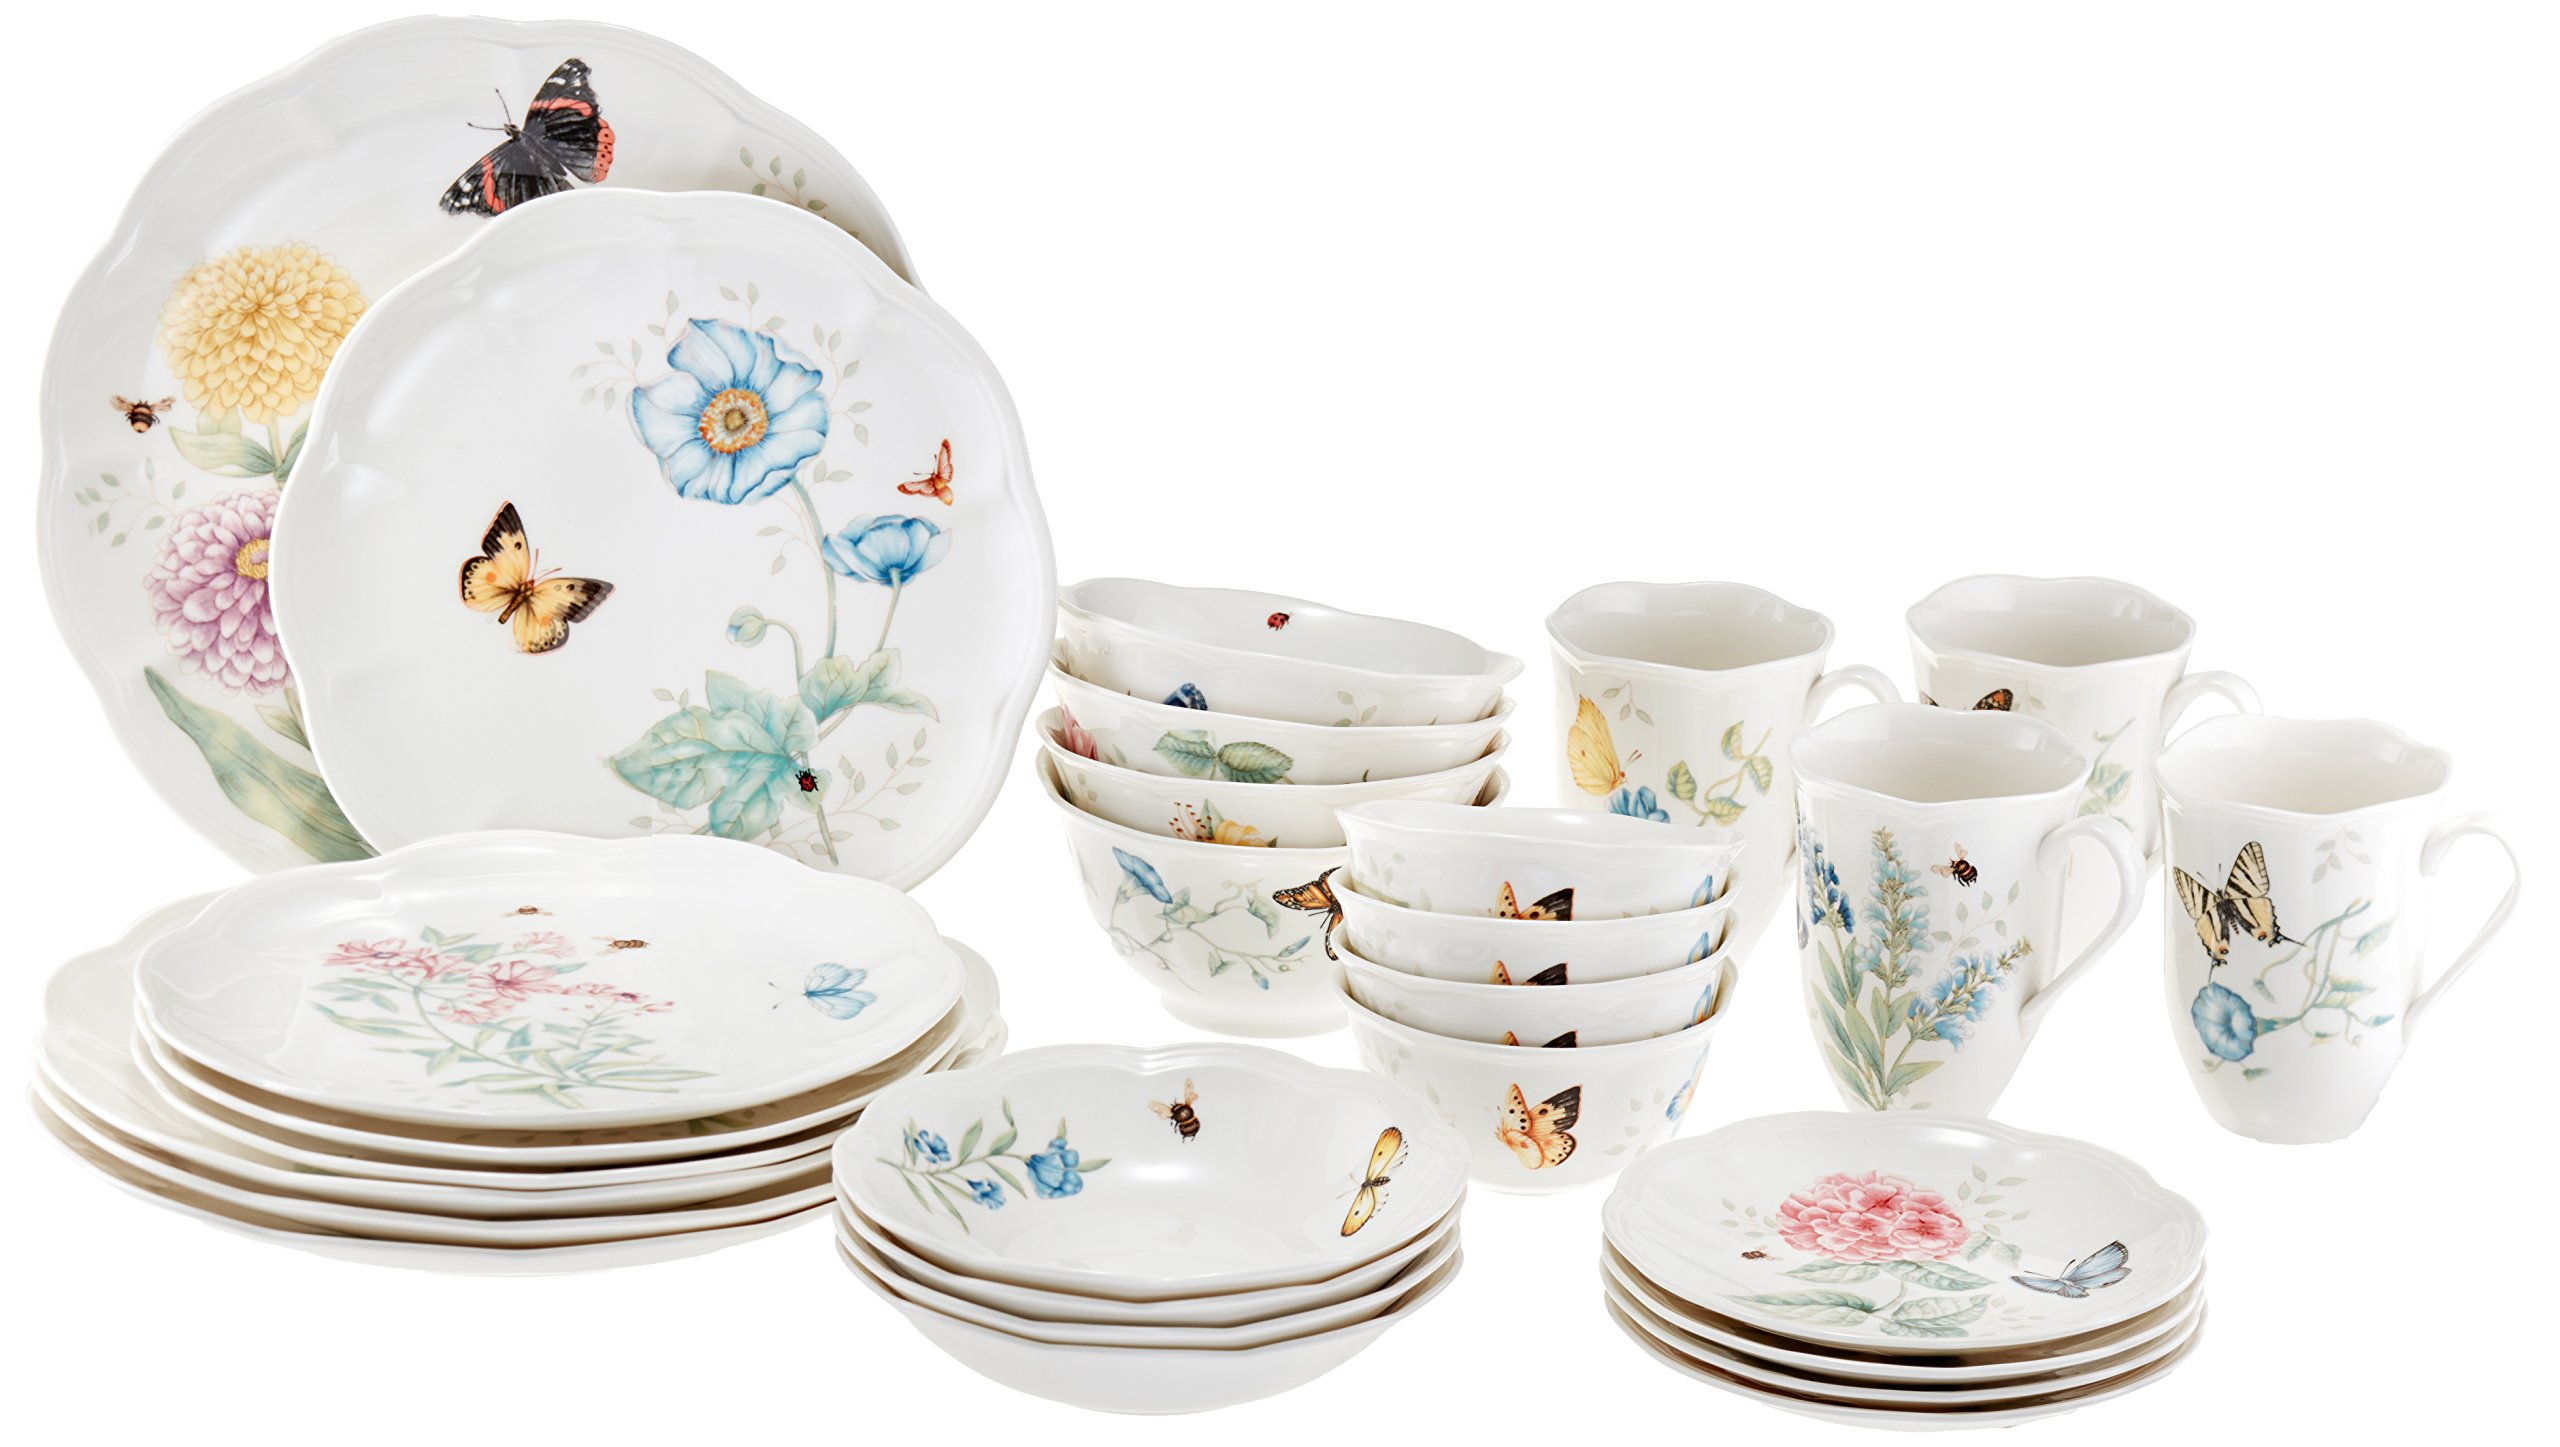 Lenox 28 Piece Butterfly Meadow Classic Dinnerware Set product image  sc 1 st  Amazon.com & Best Rated in Dinnerware Sets u0026 Helpful Customer Reviews - Amazon.com